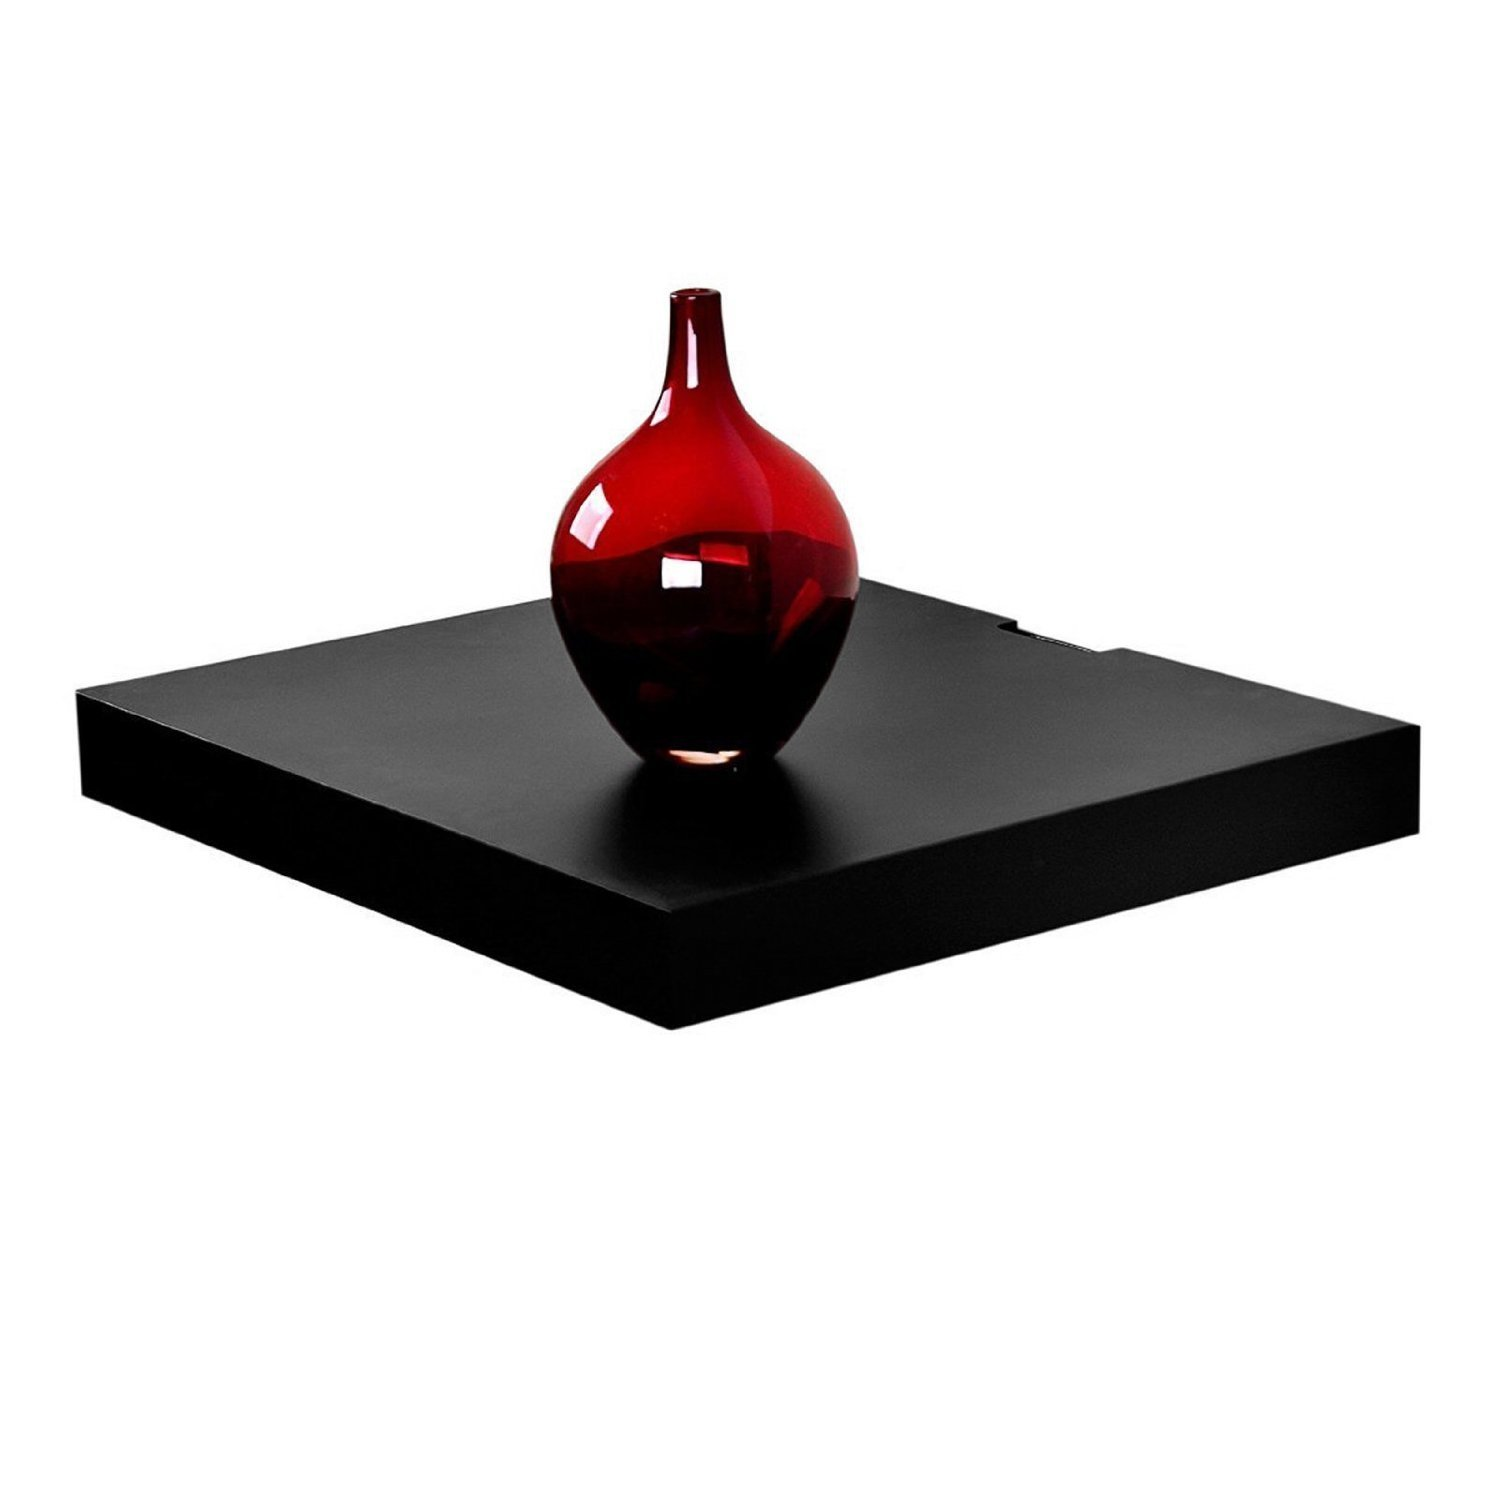 """WELLAND Wall Mounted 18""""x16"""" Black Floating Shelf for Cable or Satellite Box, DVD Player, Game Station, Receiver, Tv Stands with Hidden Bracket"""